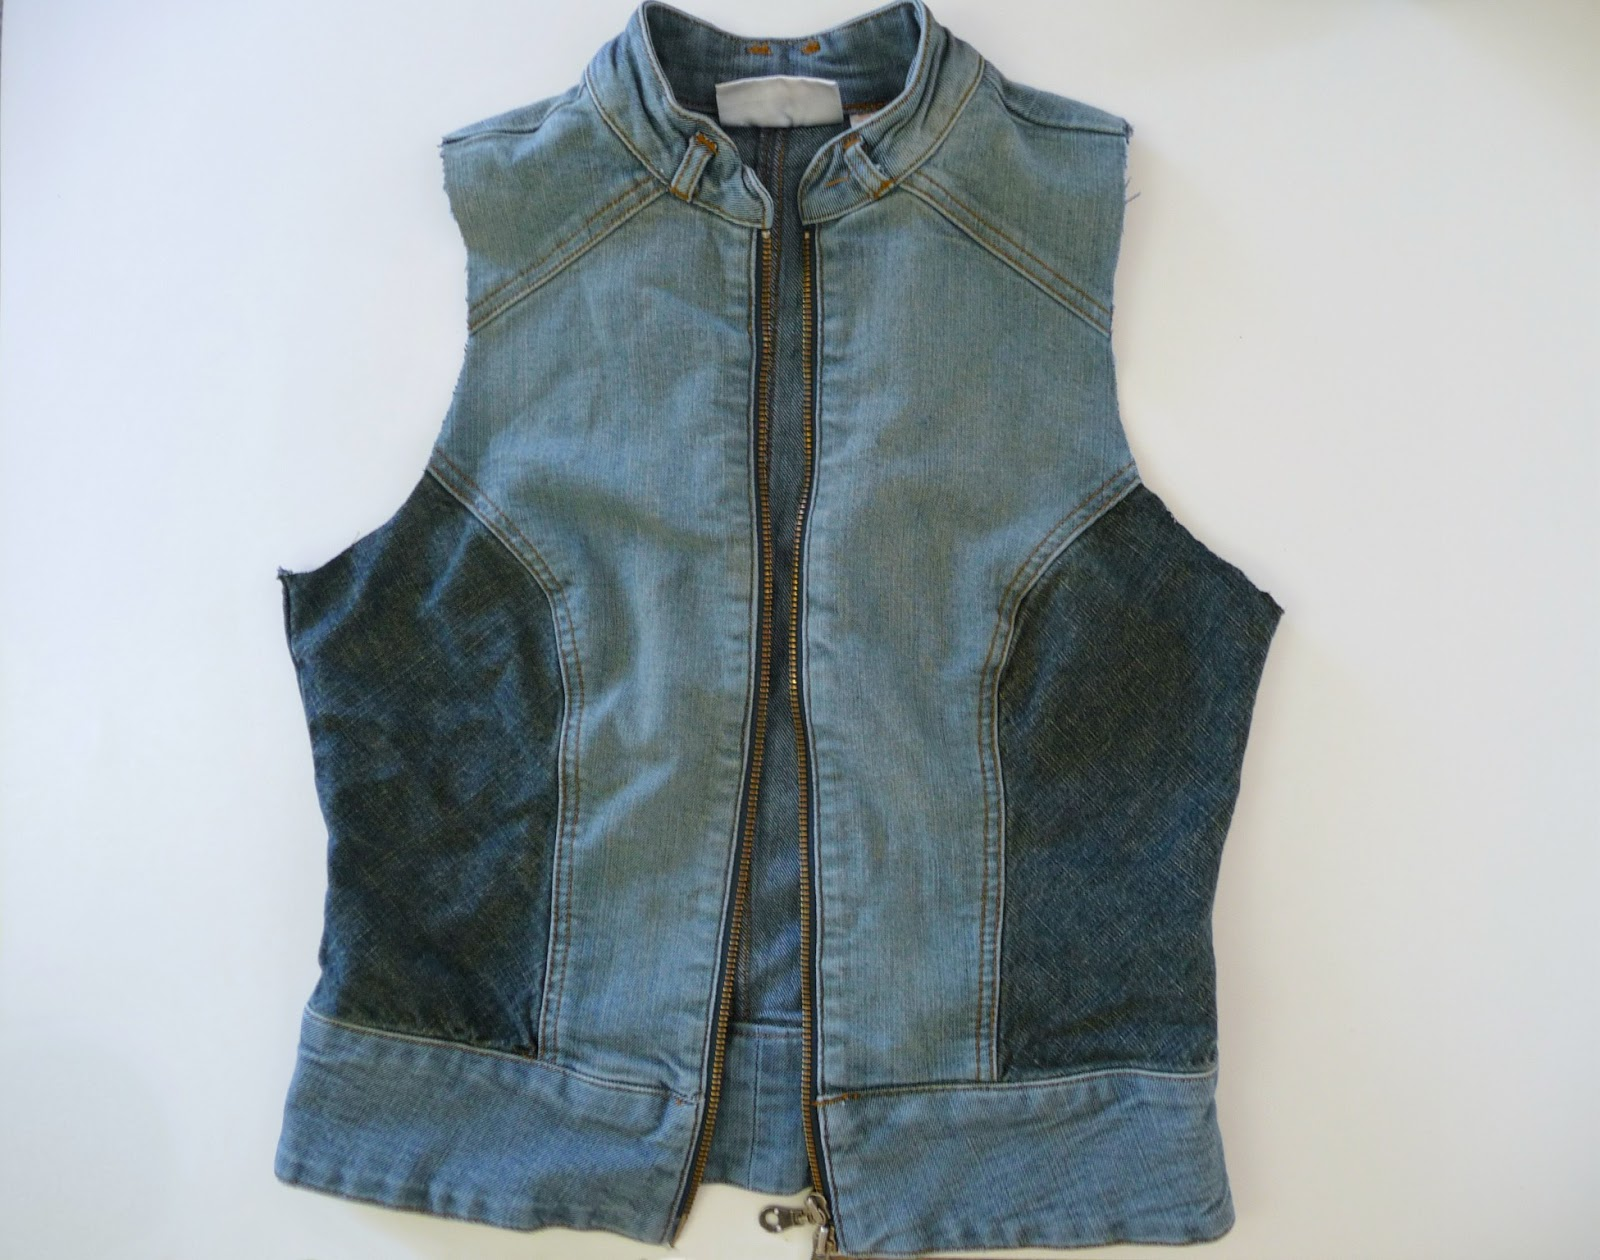 DIY denim vest refashion